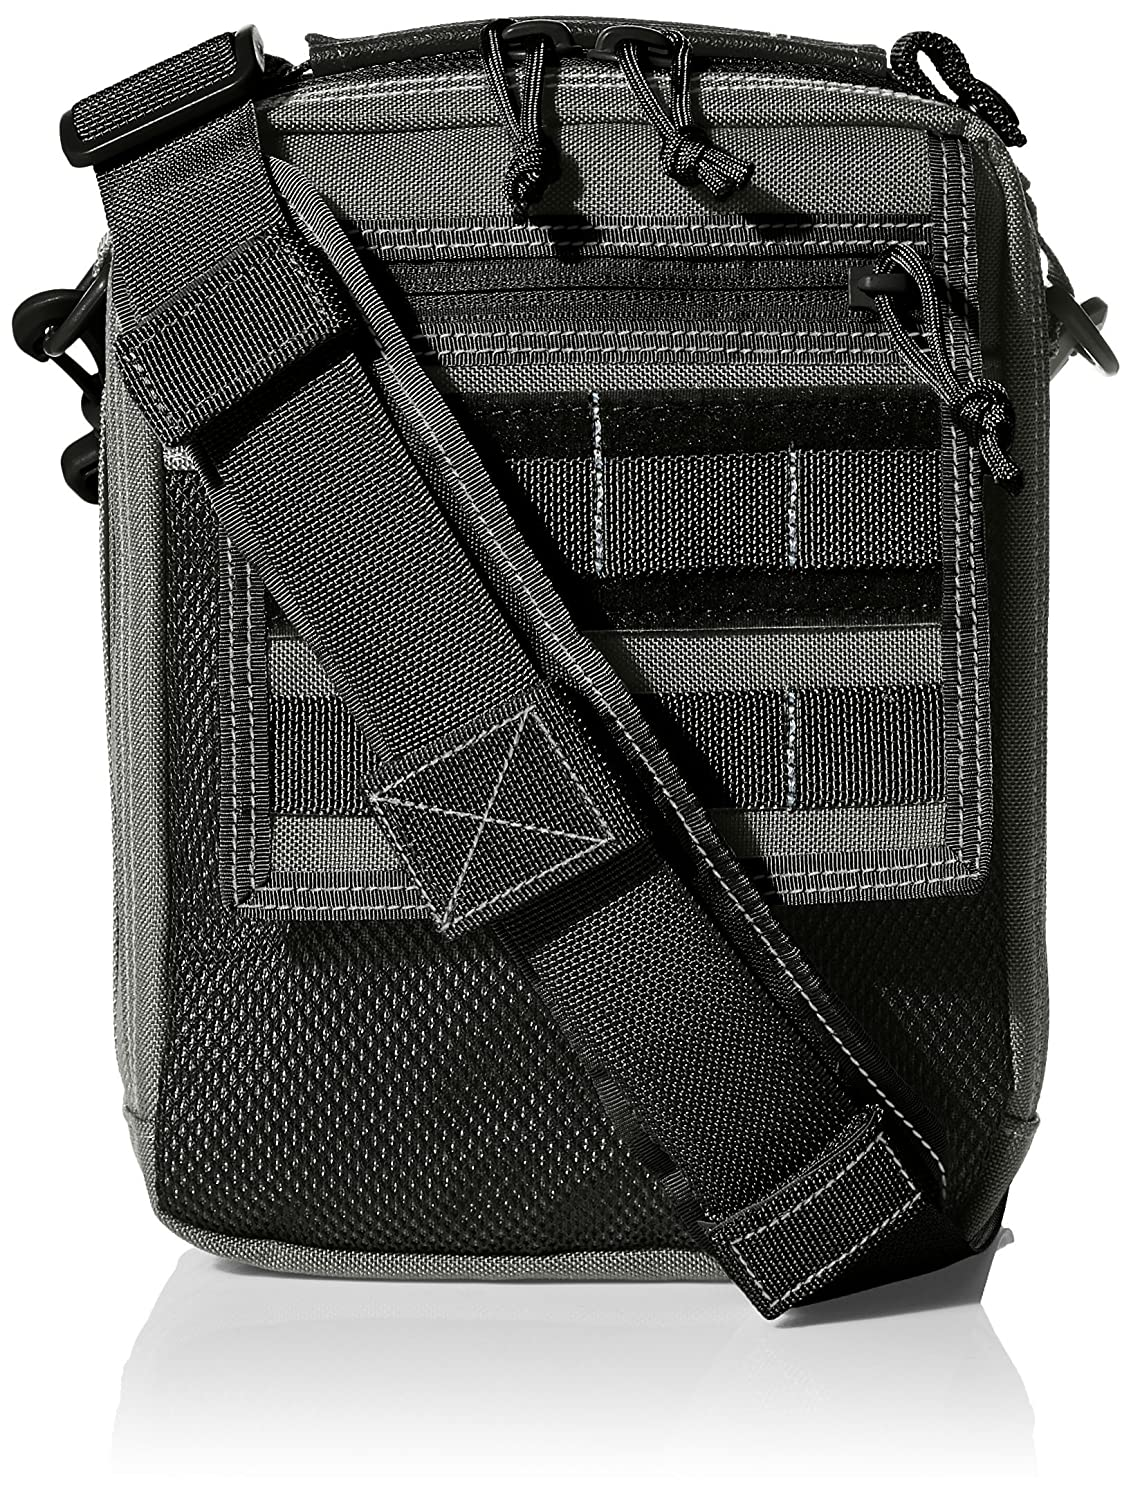 Maxpedition NeatFreak Organizer - wolf gray